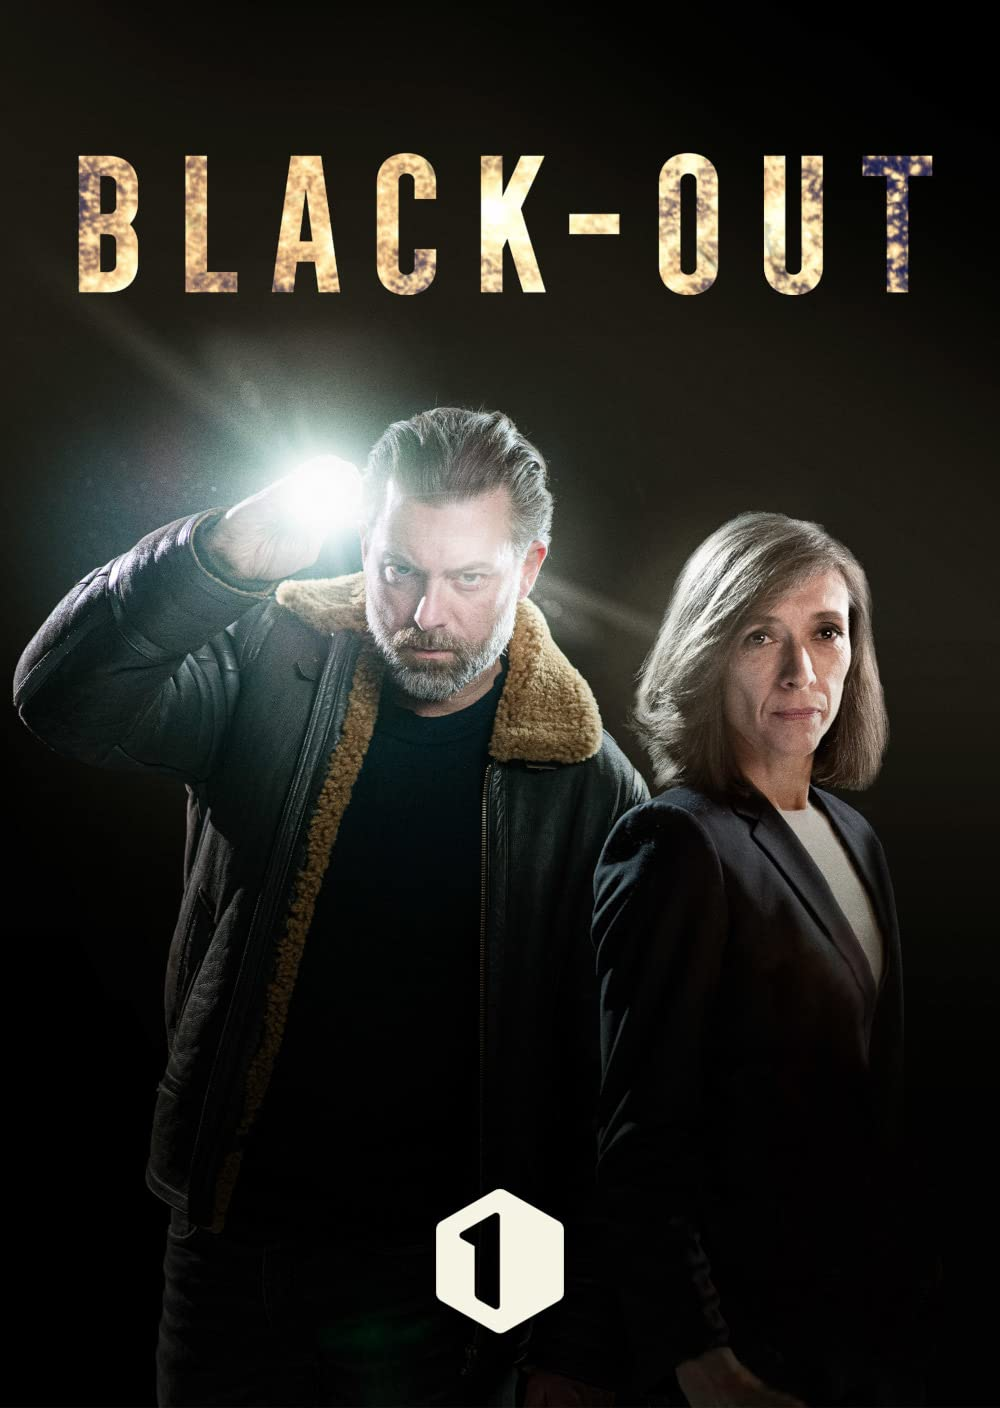 Blackout 2020 S01 Complete MX Series Hindi Dubbed Series 1.3GB HDRip 480p Download